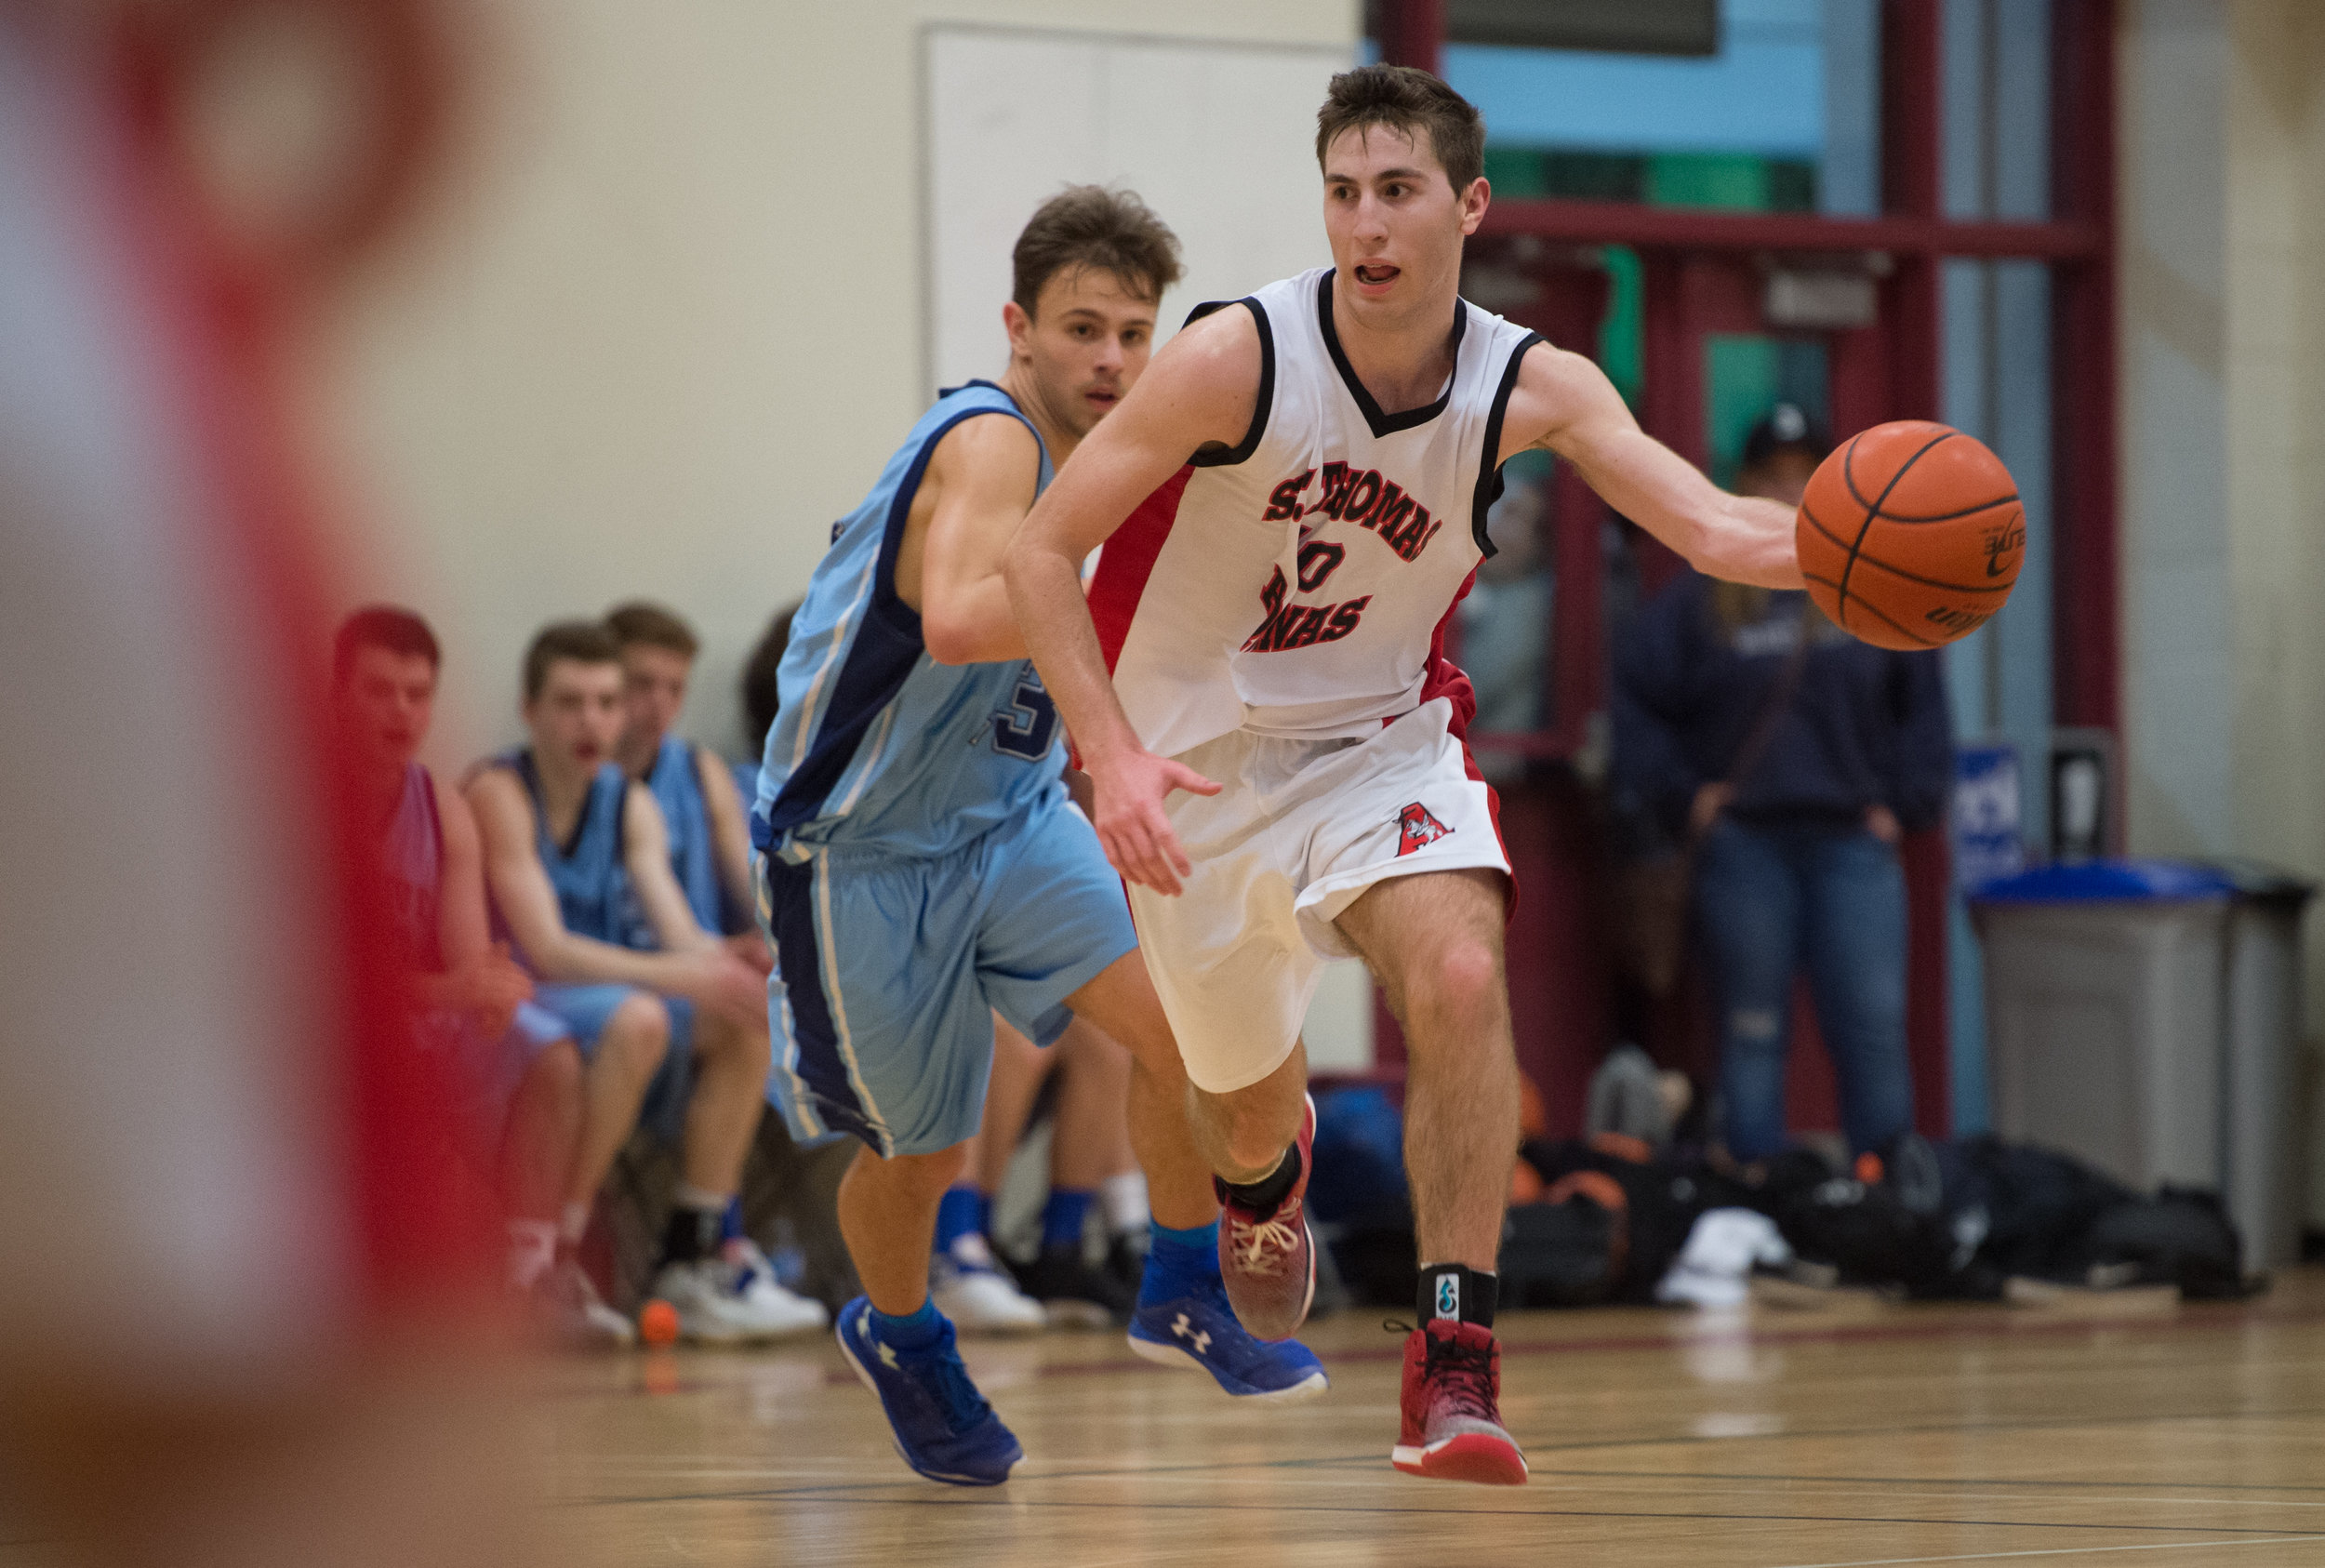 Matteo Botteselle drives through midcourt in STA's 94-78 victory over the Seycove Seyhawks.  Botteselle was awarded the No Regrets Player of the Game for his efforts in the Howe Sound AA Championship Game.